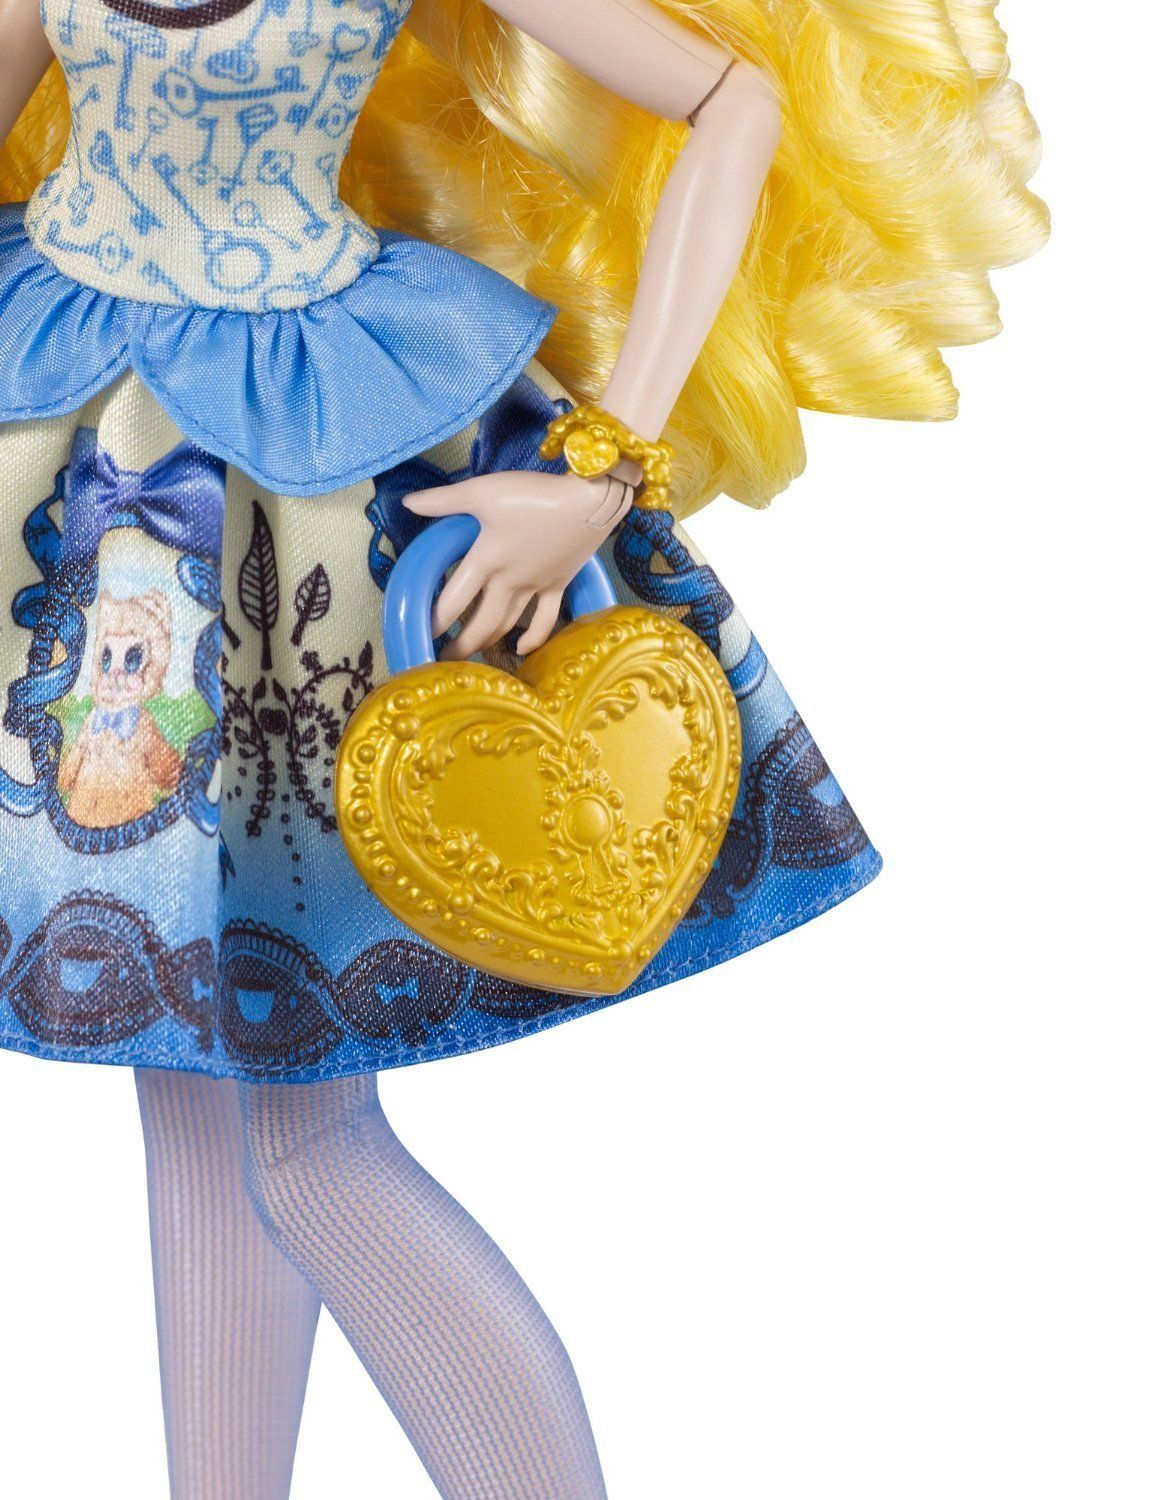 Image 2 of Ever After High Blondie Lockes Fashion Doll, 6+, Mattel